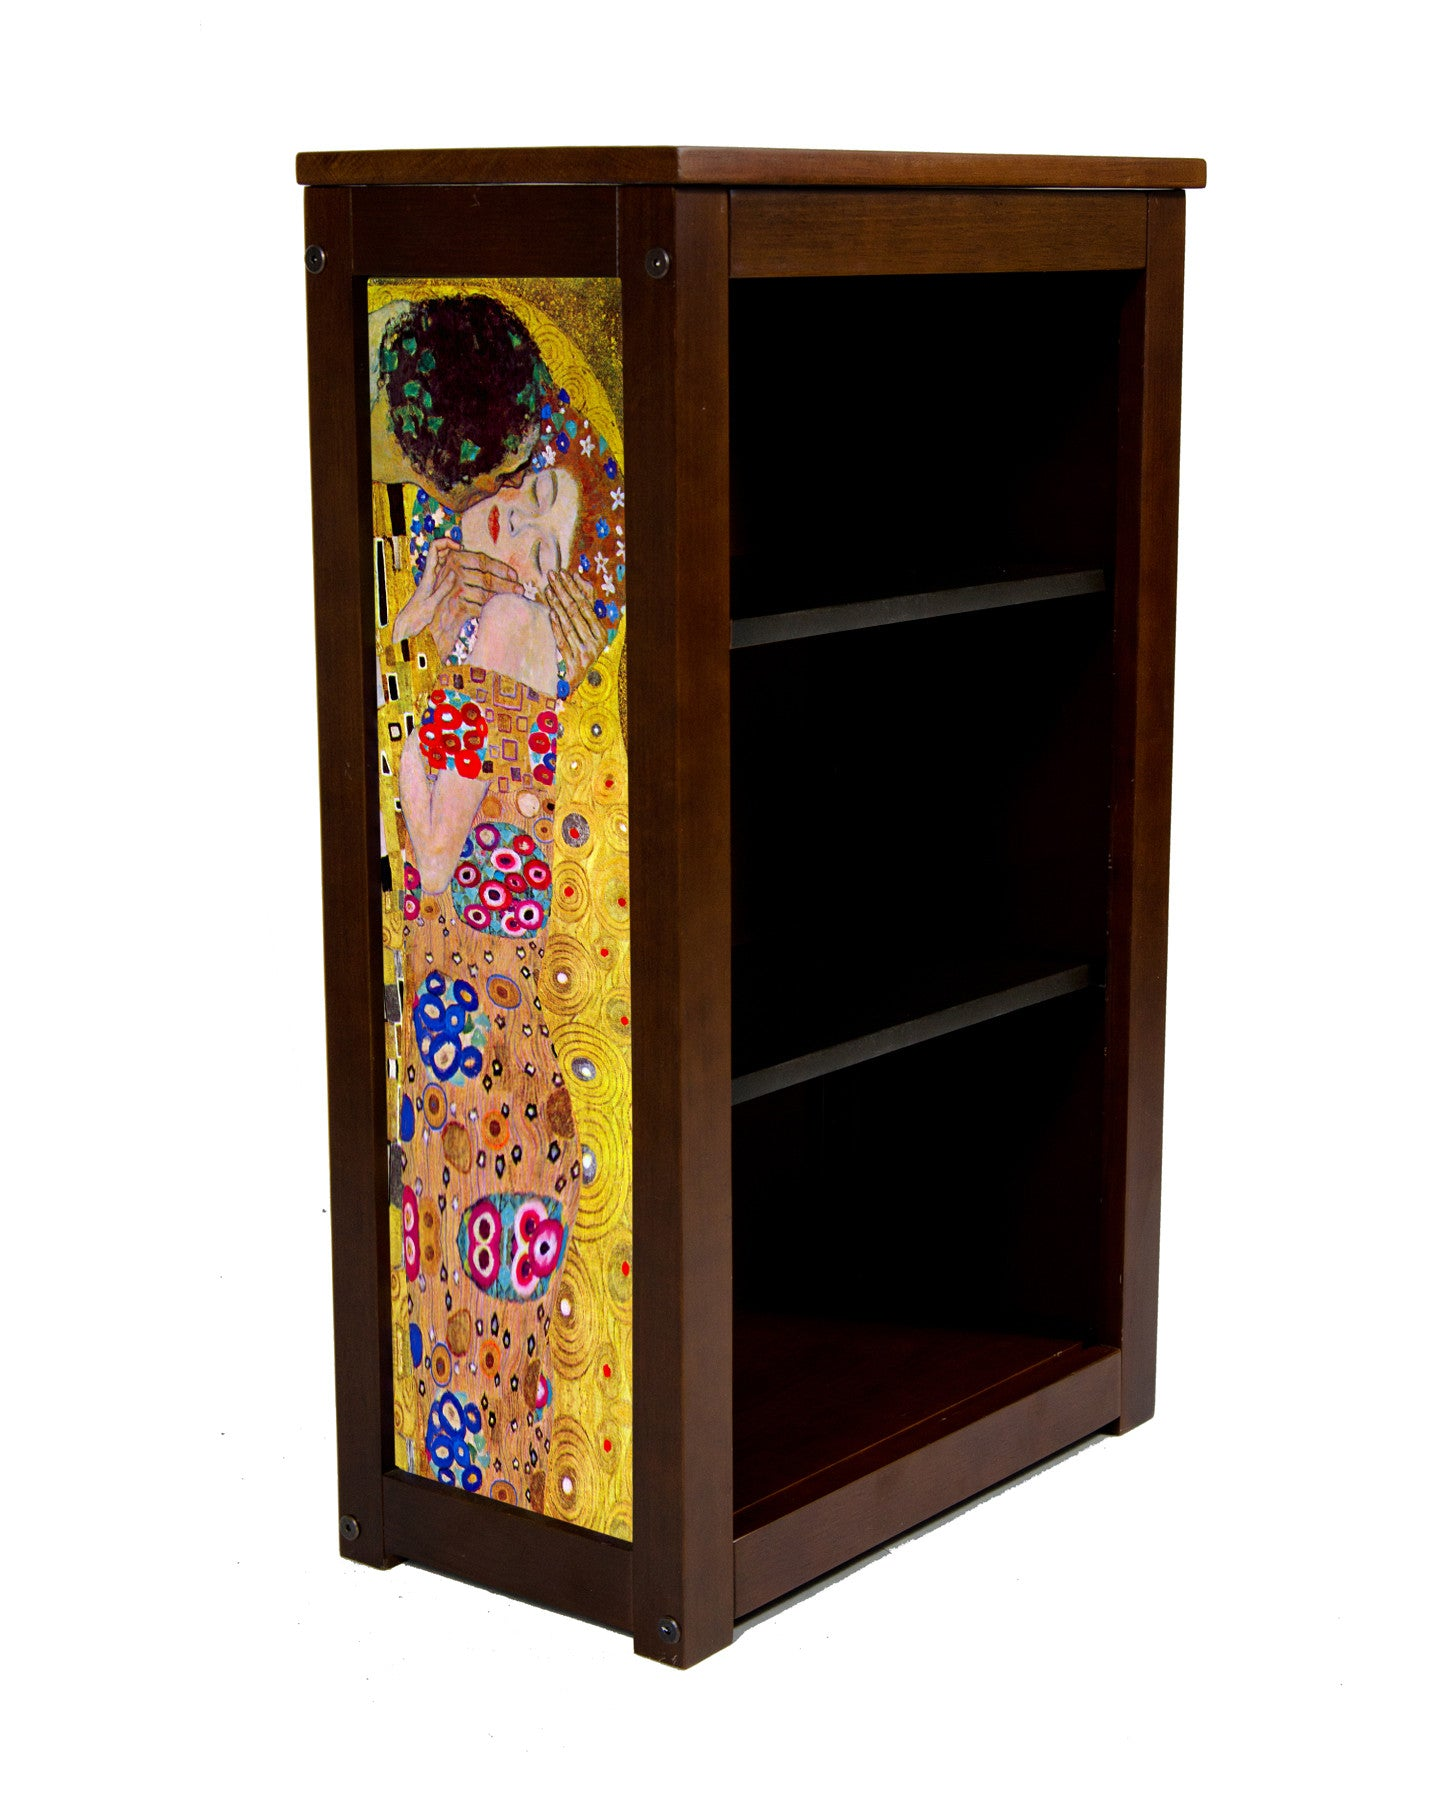 Pine Book Cabinet with The Kiss by Klimt